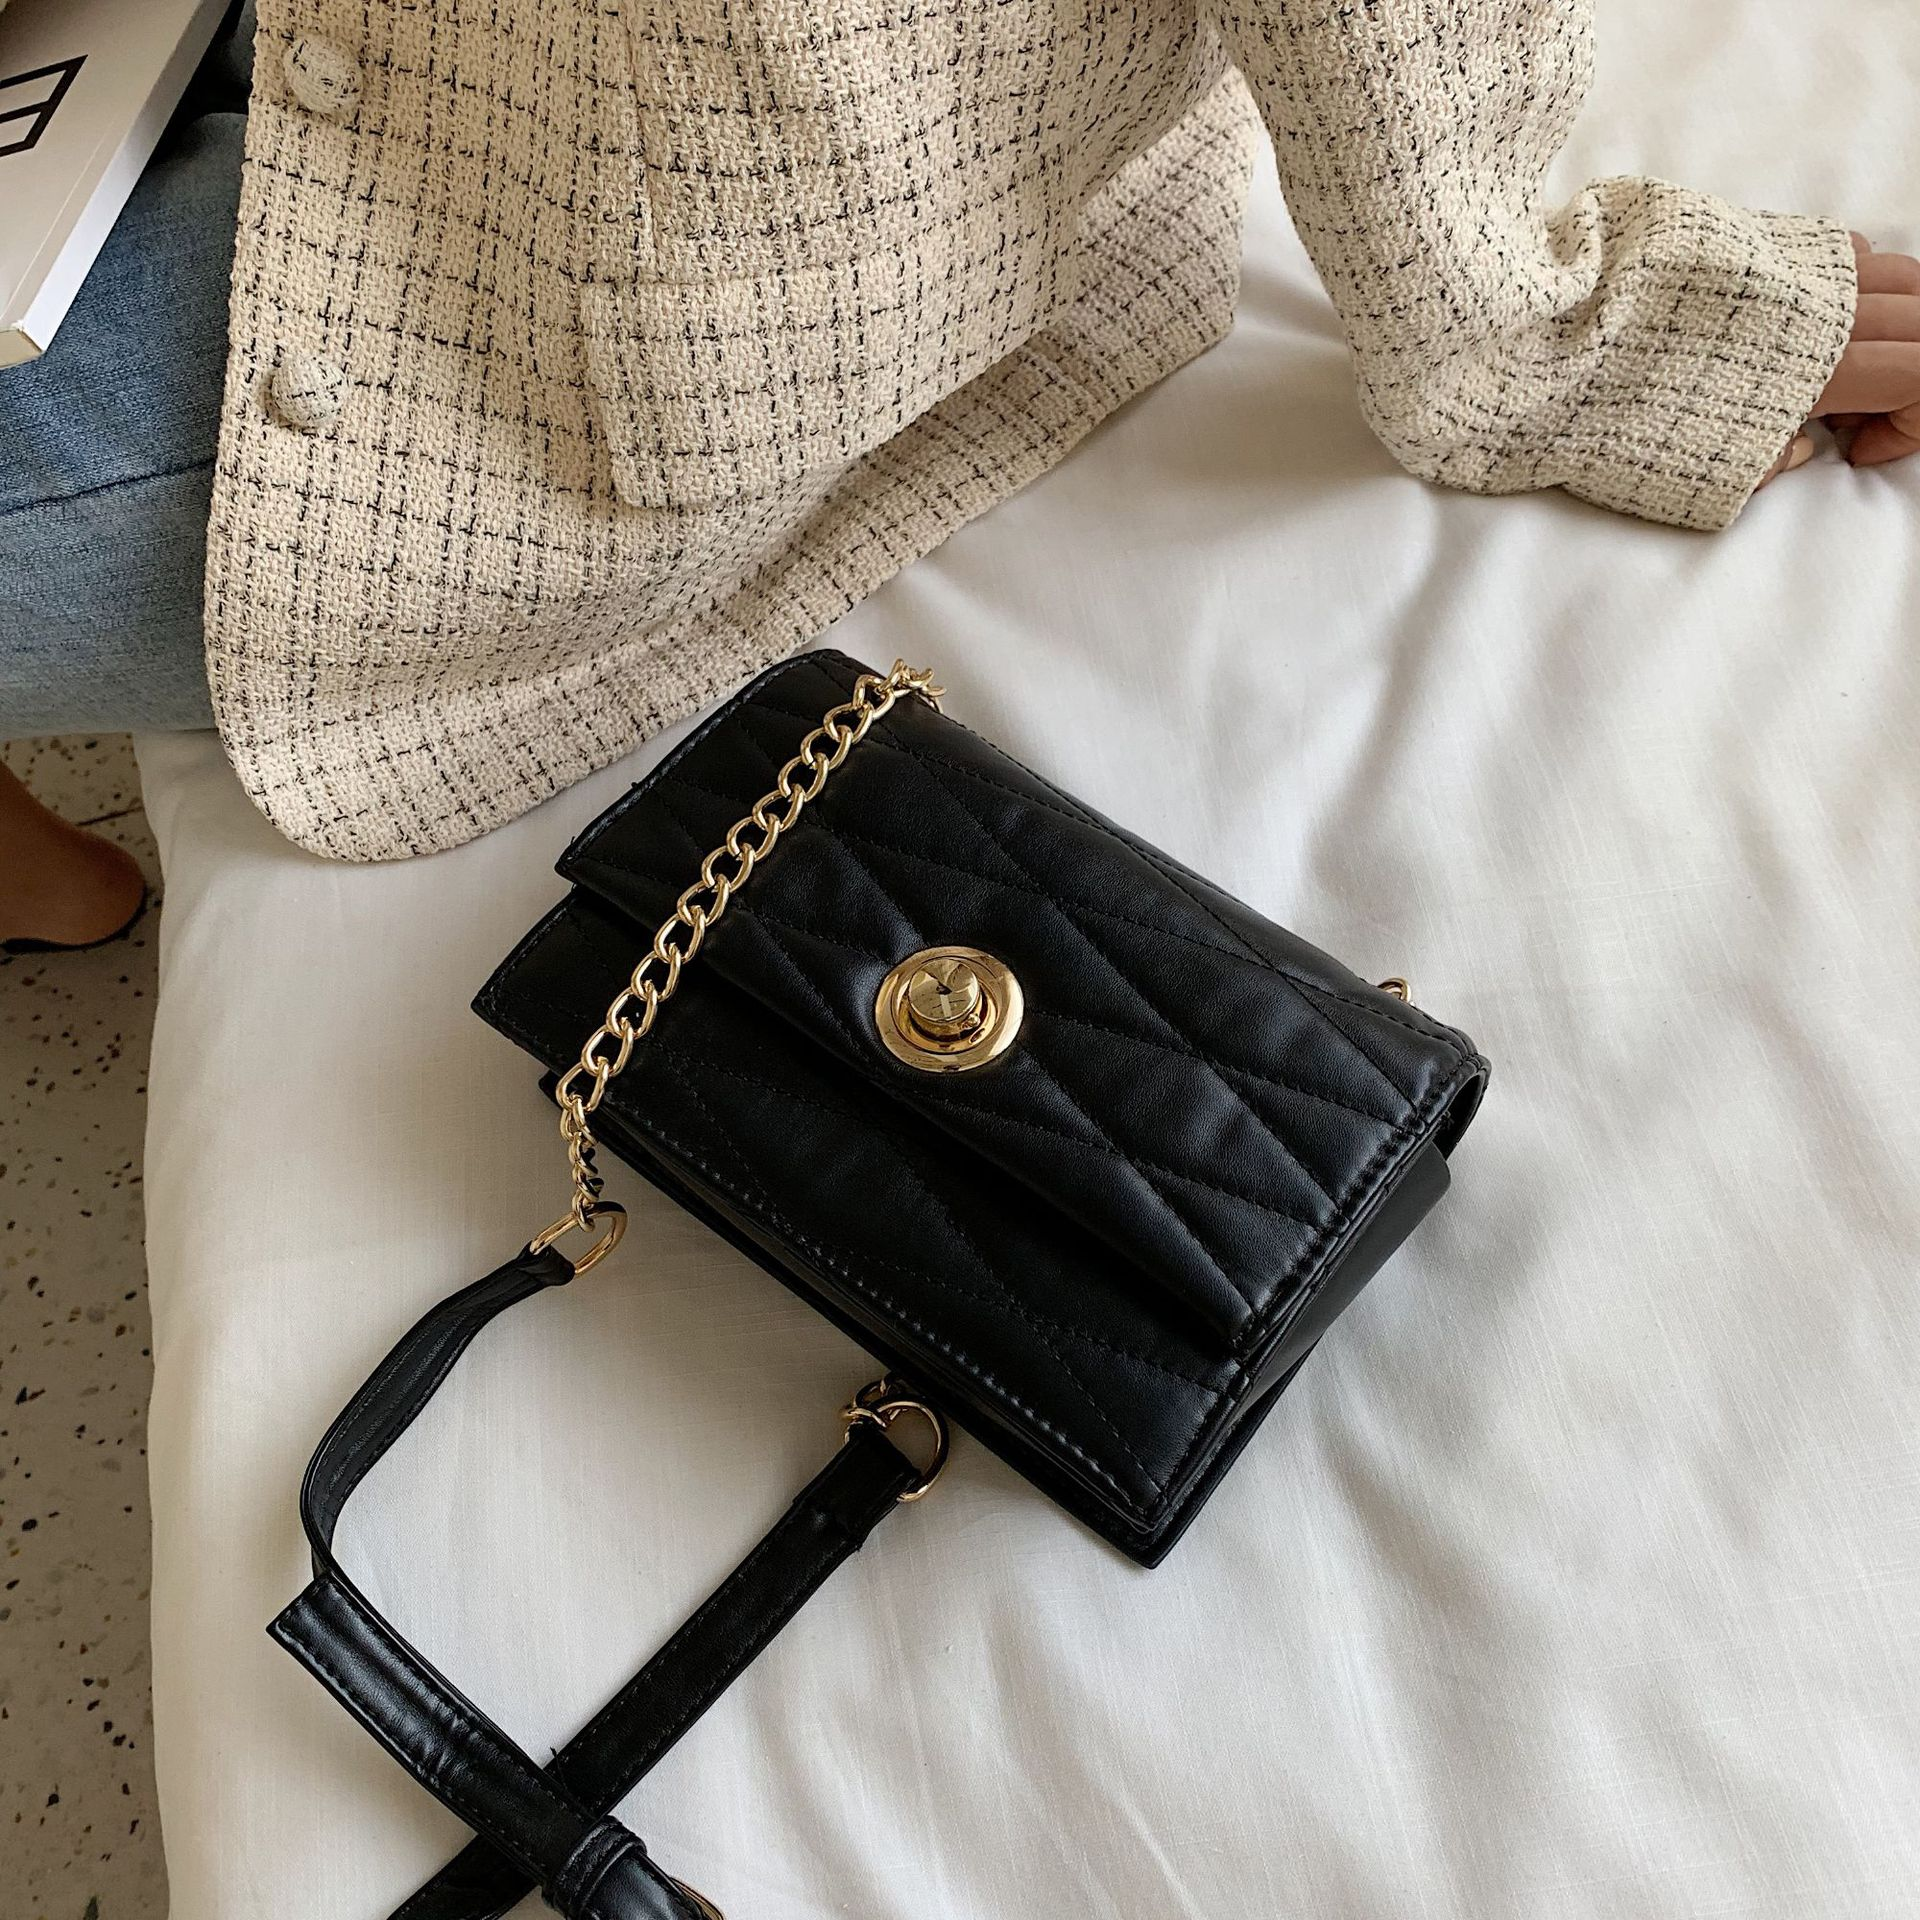 Luxury Handbags women bag over the Shoulder Crossbody Bag White Trend Girl Quality Chain Messenger Crossbody Bags For Women bags in Top Handle Bags from Luggage Bags